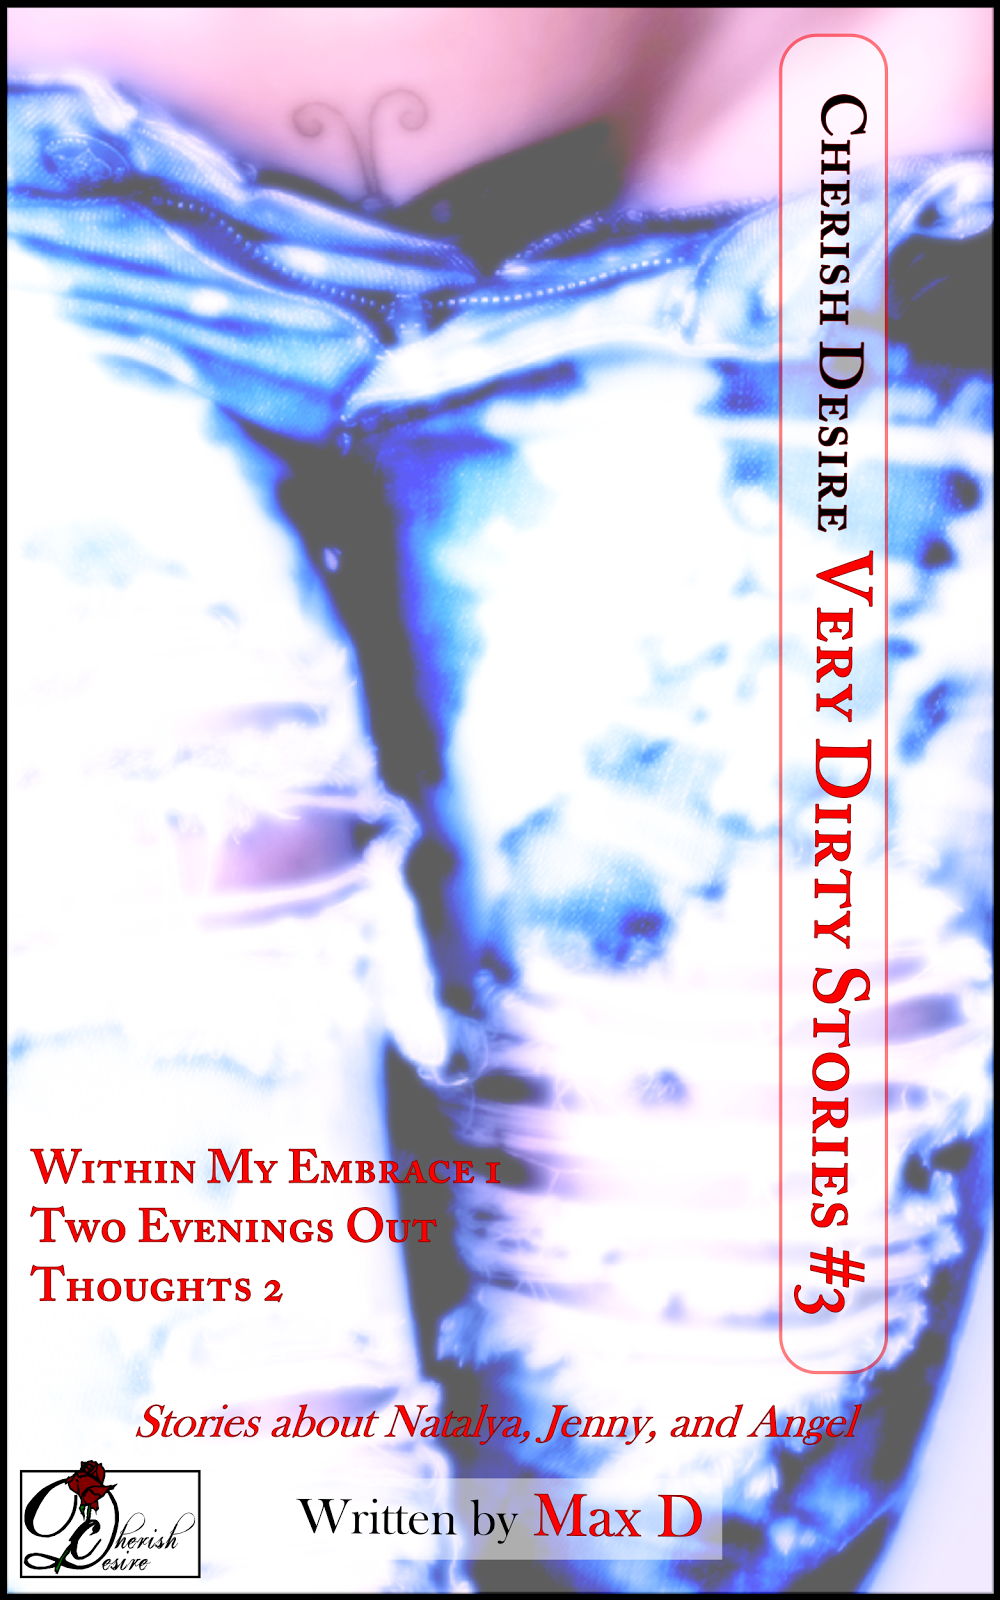 Cherish Desire: Very Dirty Stories #3, Max D, erotica